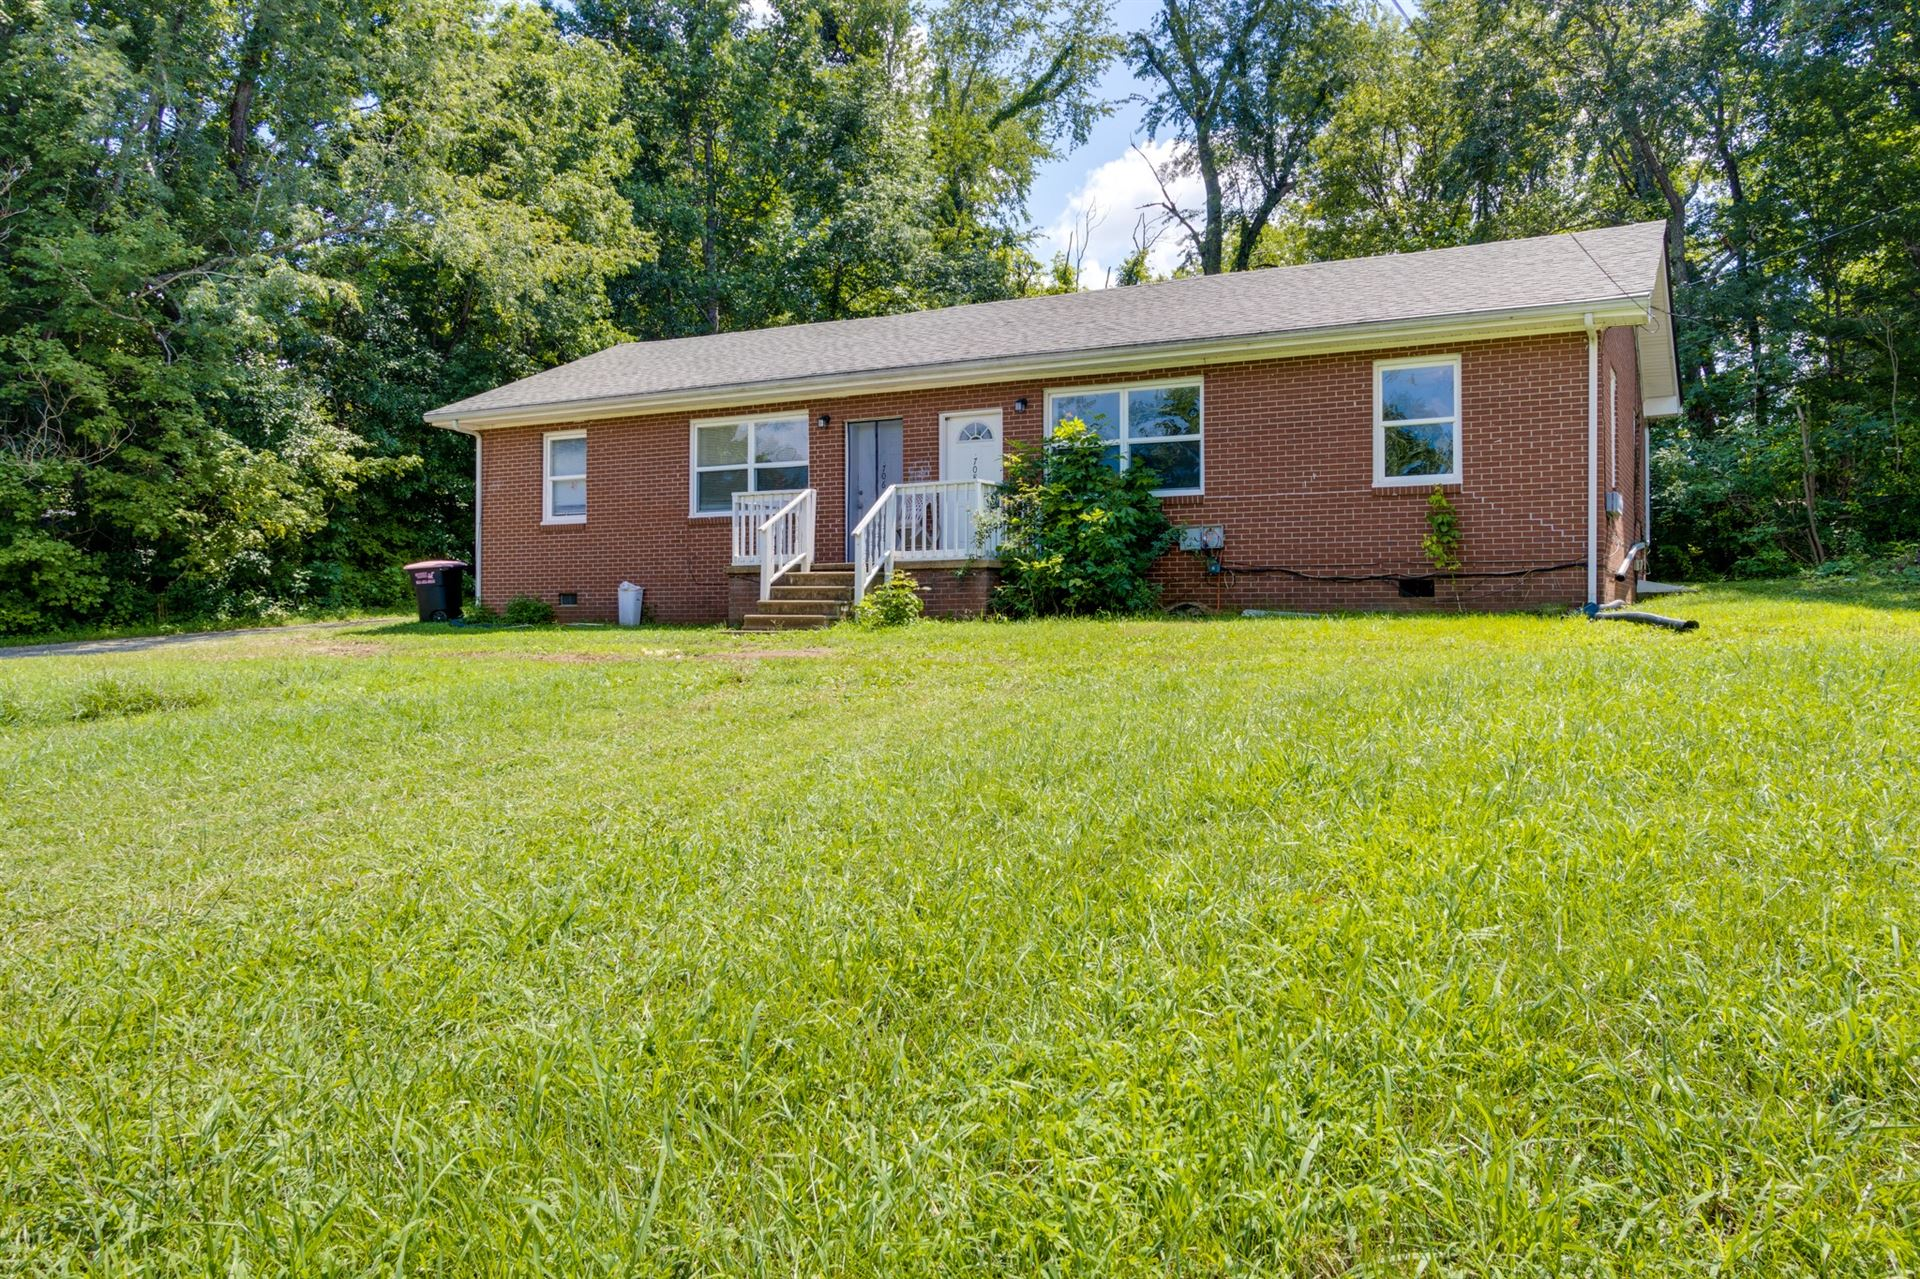 706 Britton Springs Rd, Clarksville, TN 37042 - MLS#: 2240321